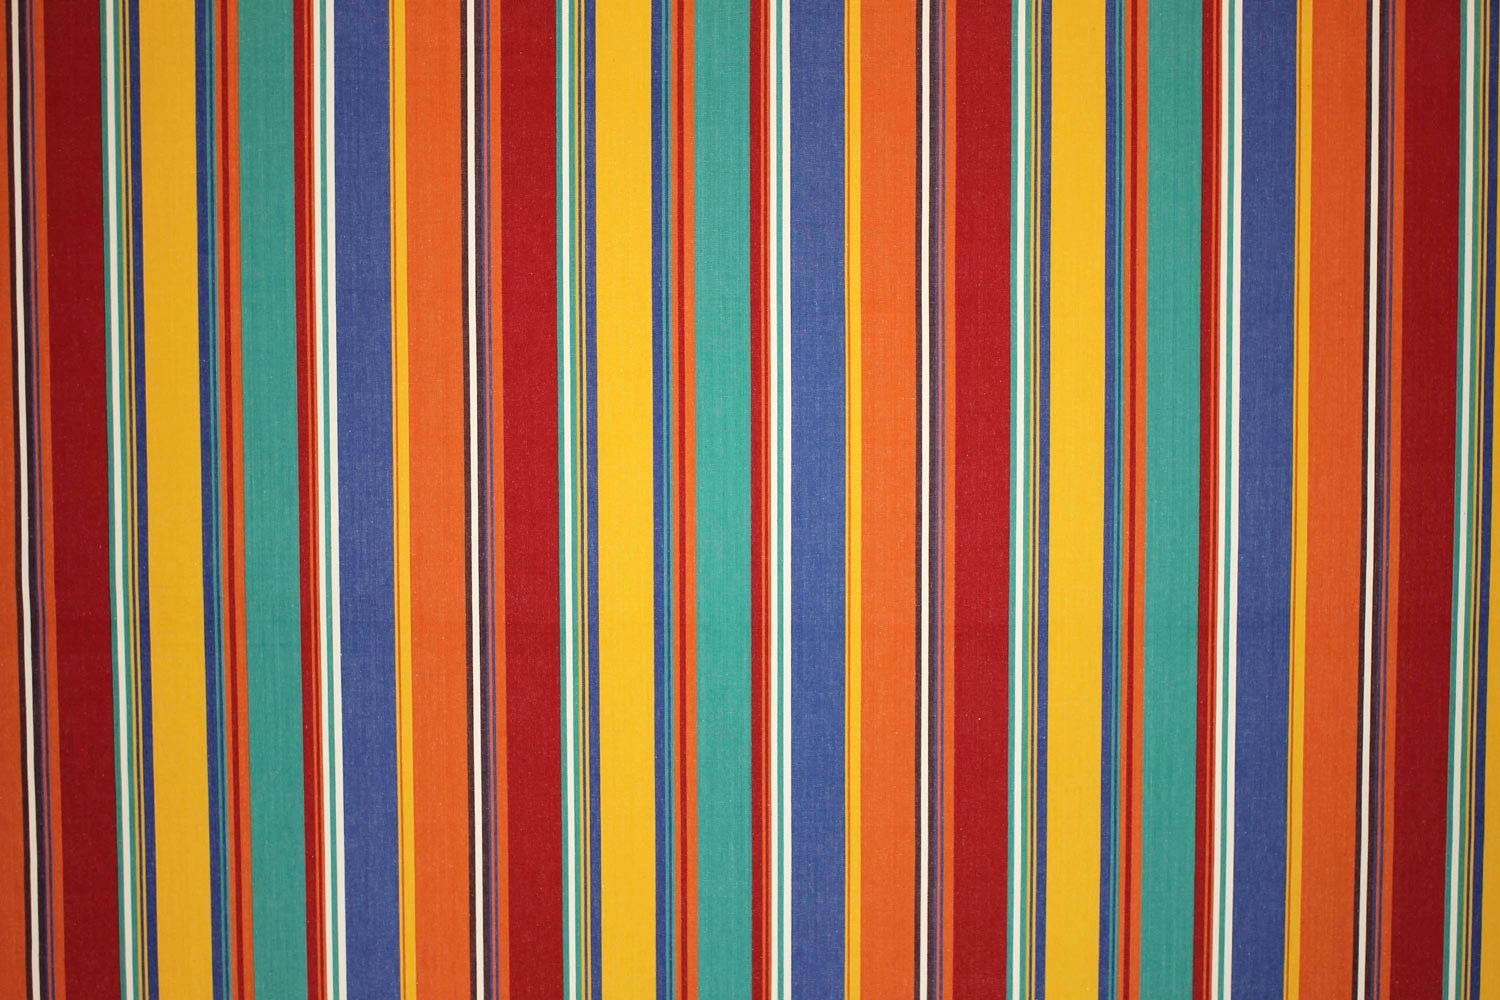 Orange Striped Fabrics | Stripe Cotton Fabrics | Striped Curtain Fabrics | Upholstery Fabrics  Karting Orange Stripes